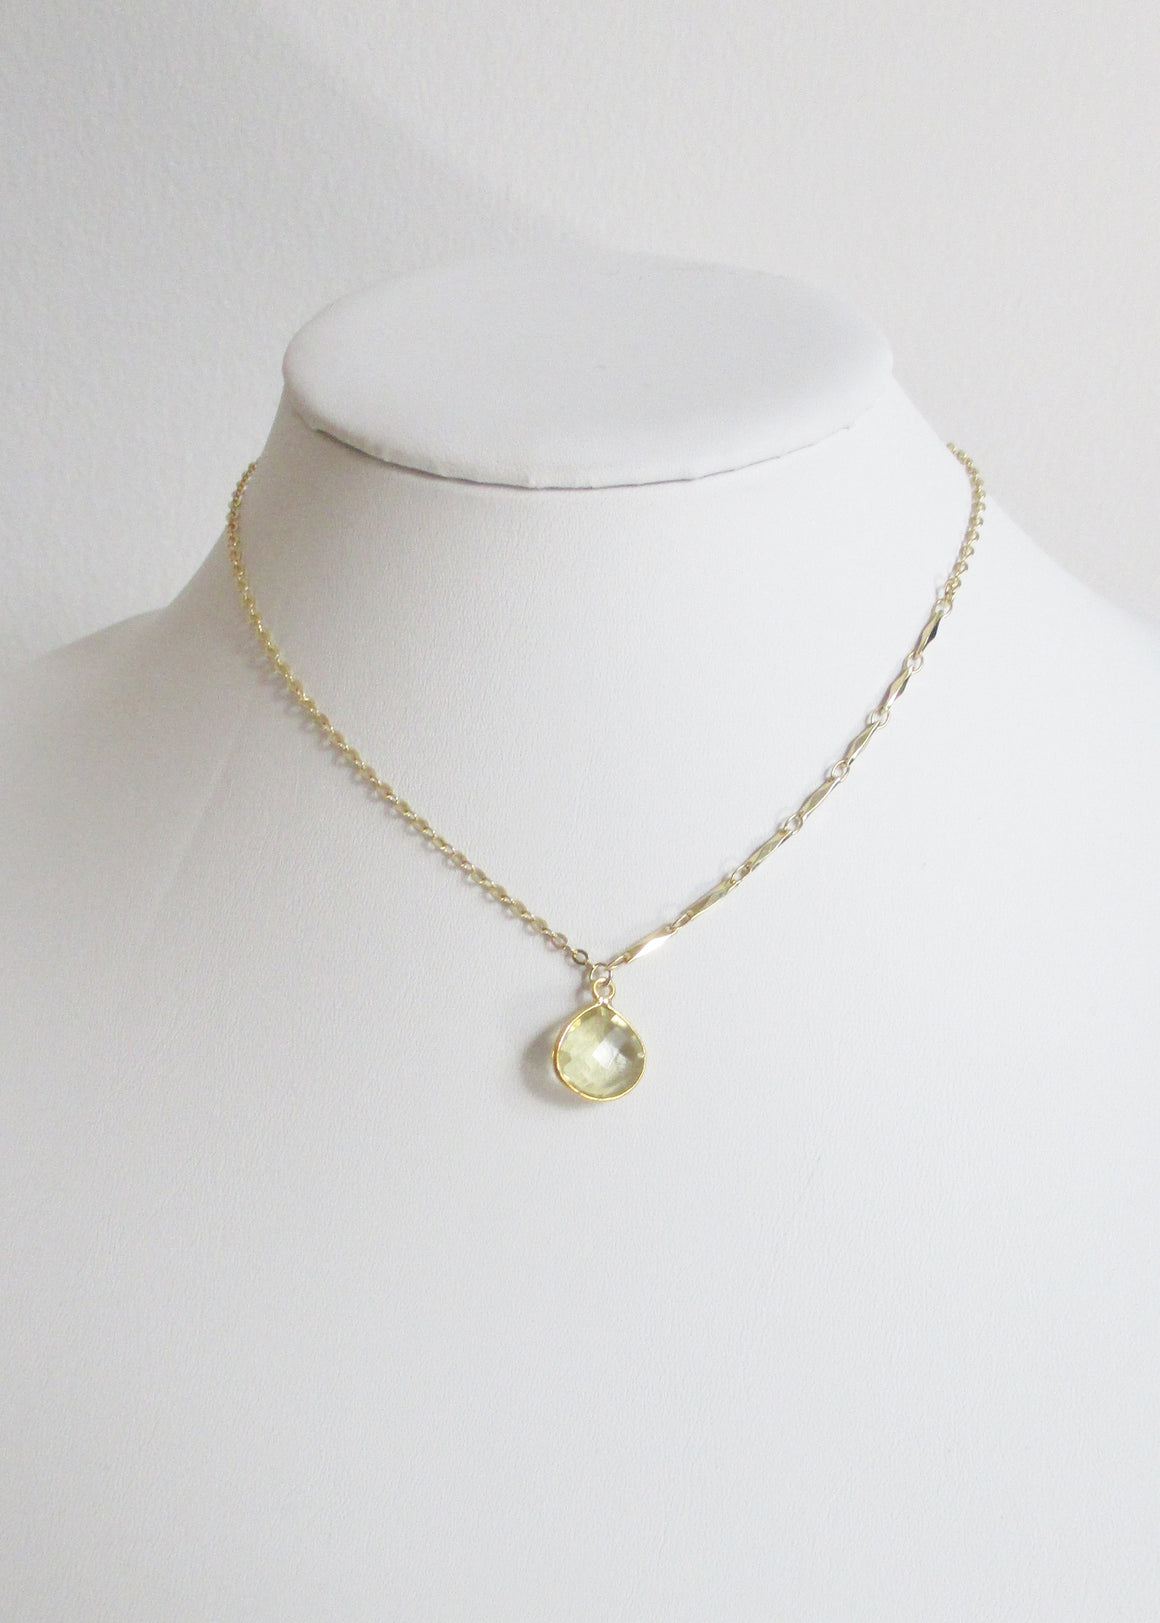 LIVEOUTLOUD ANYA CABLE CITRINE LEMON NECKLACE